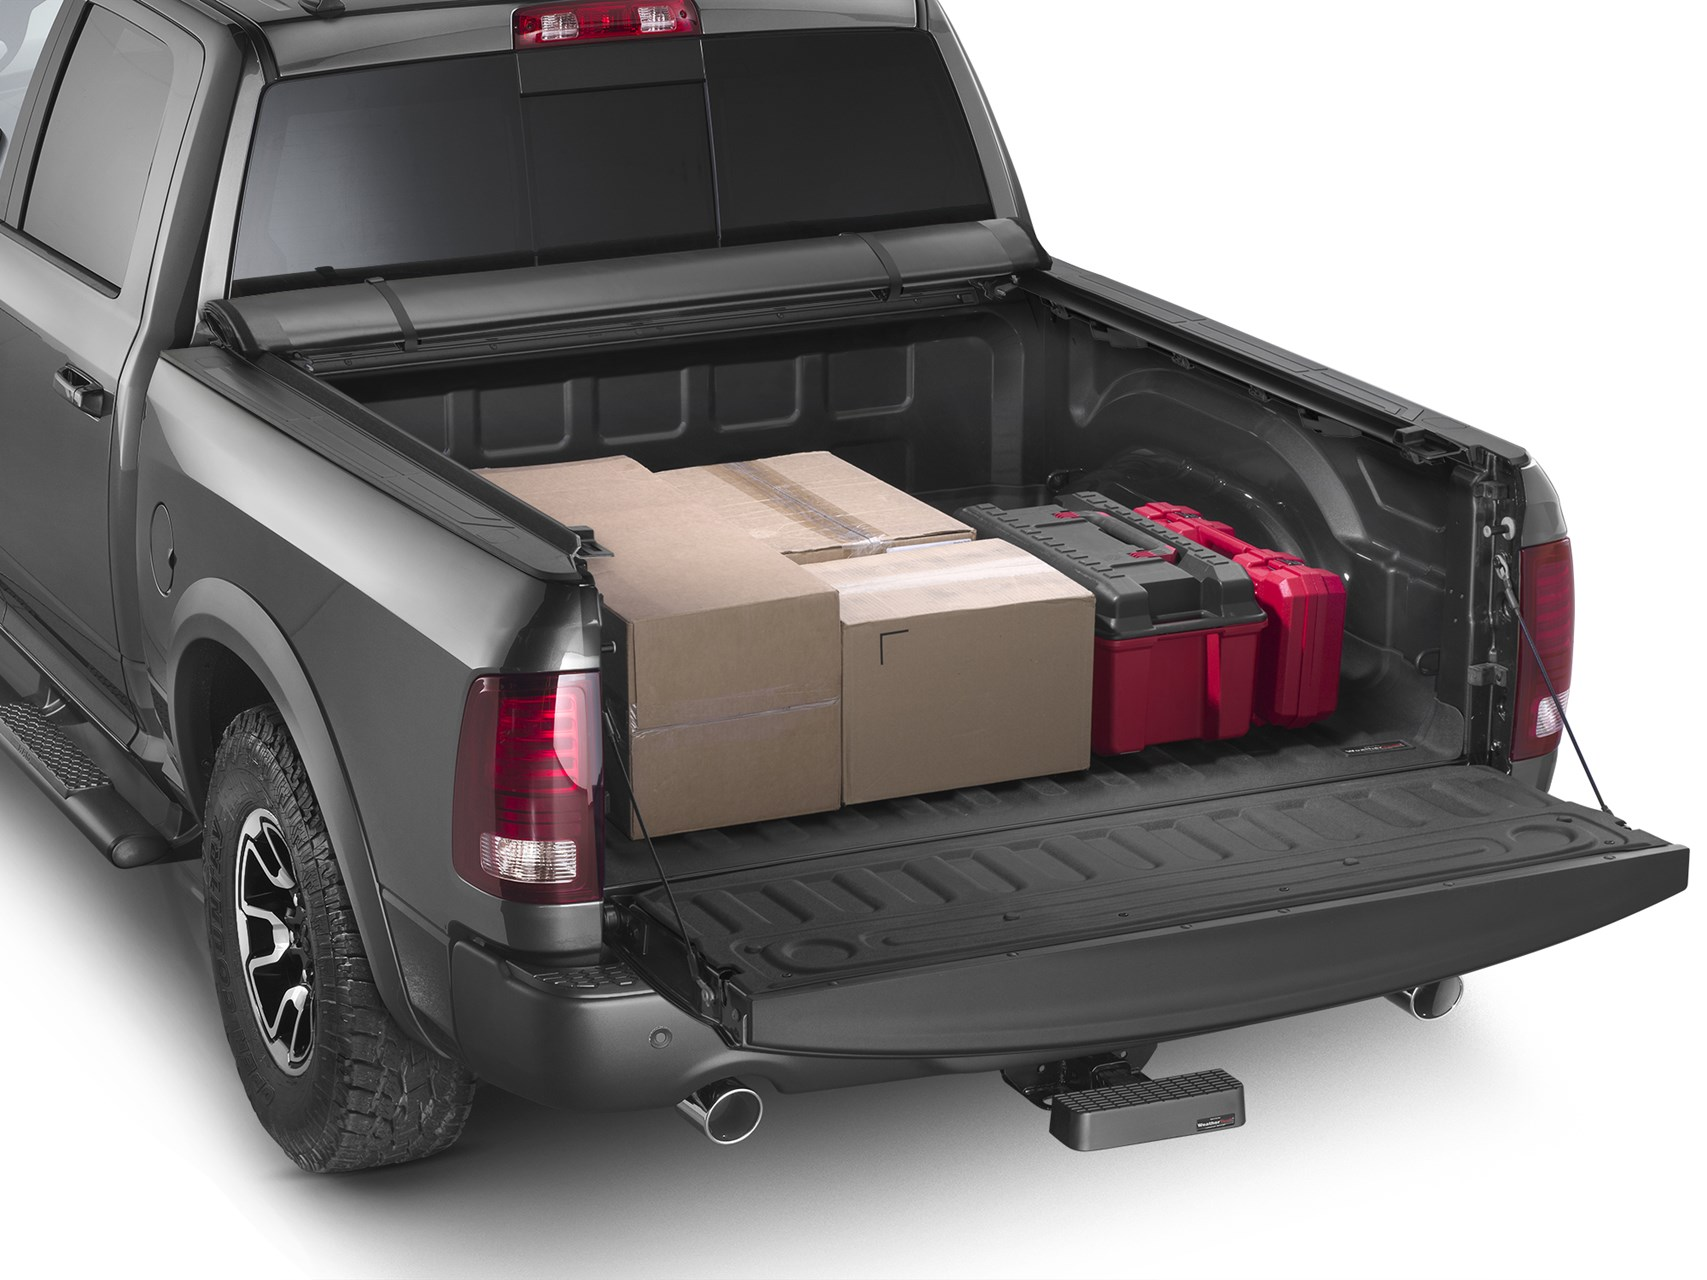 2018 RAM Ram 1500 | Roll up Truck Bed Covers for Pickup Trucks ...